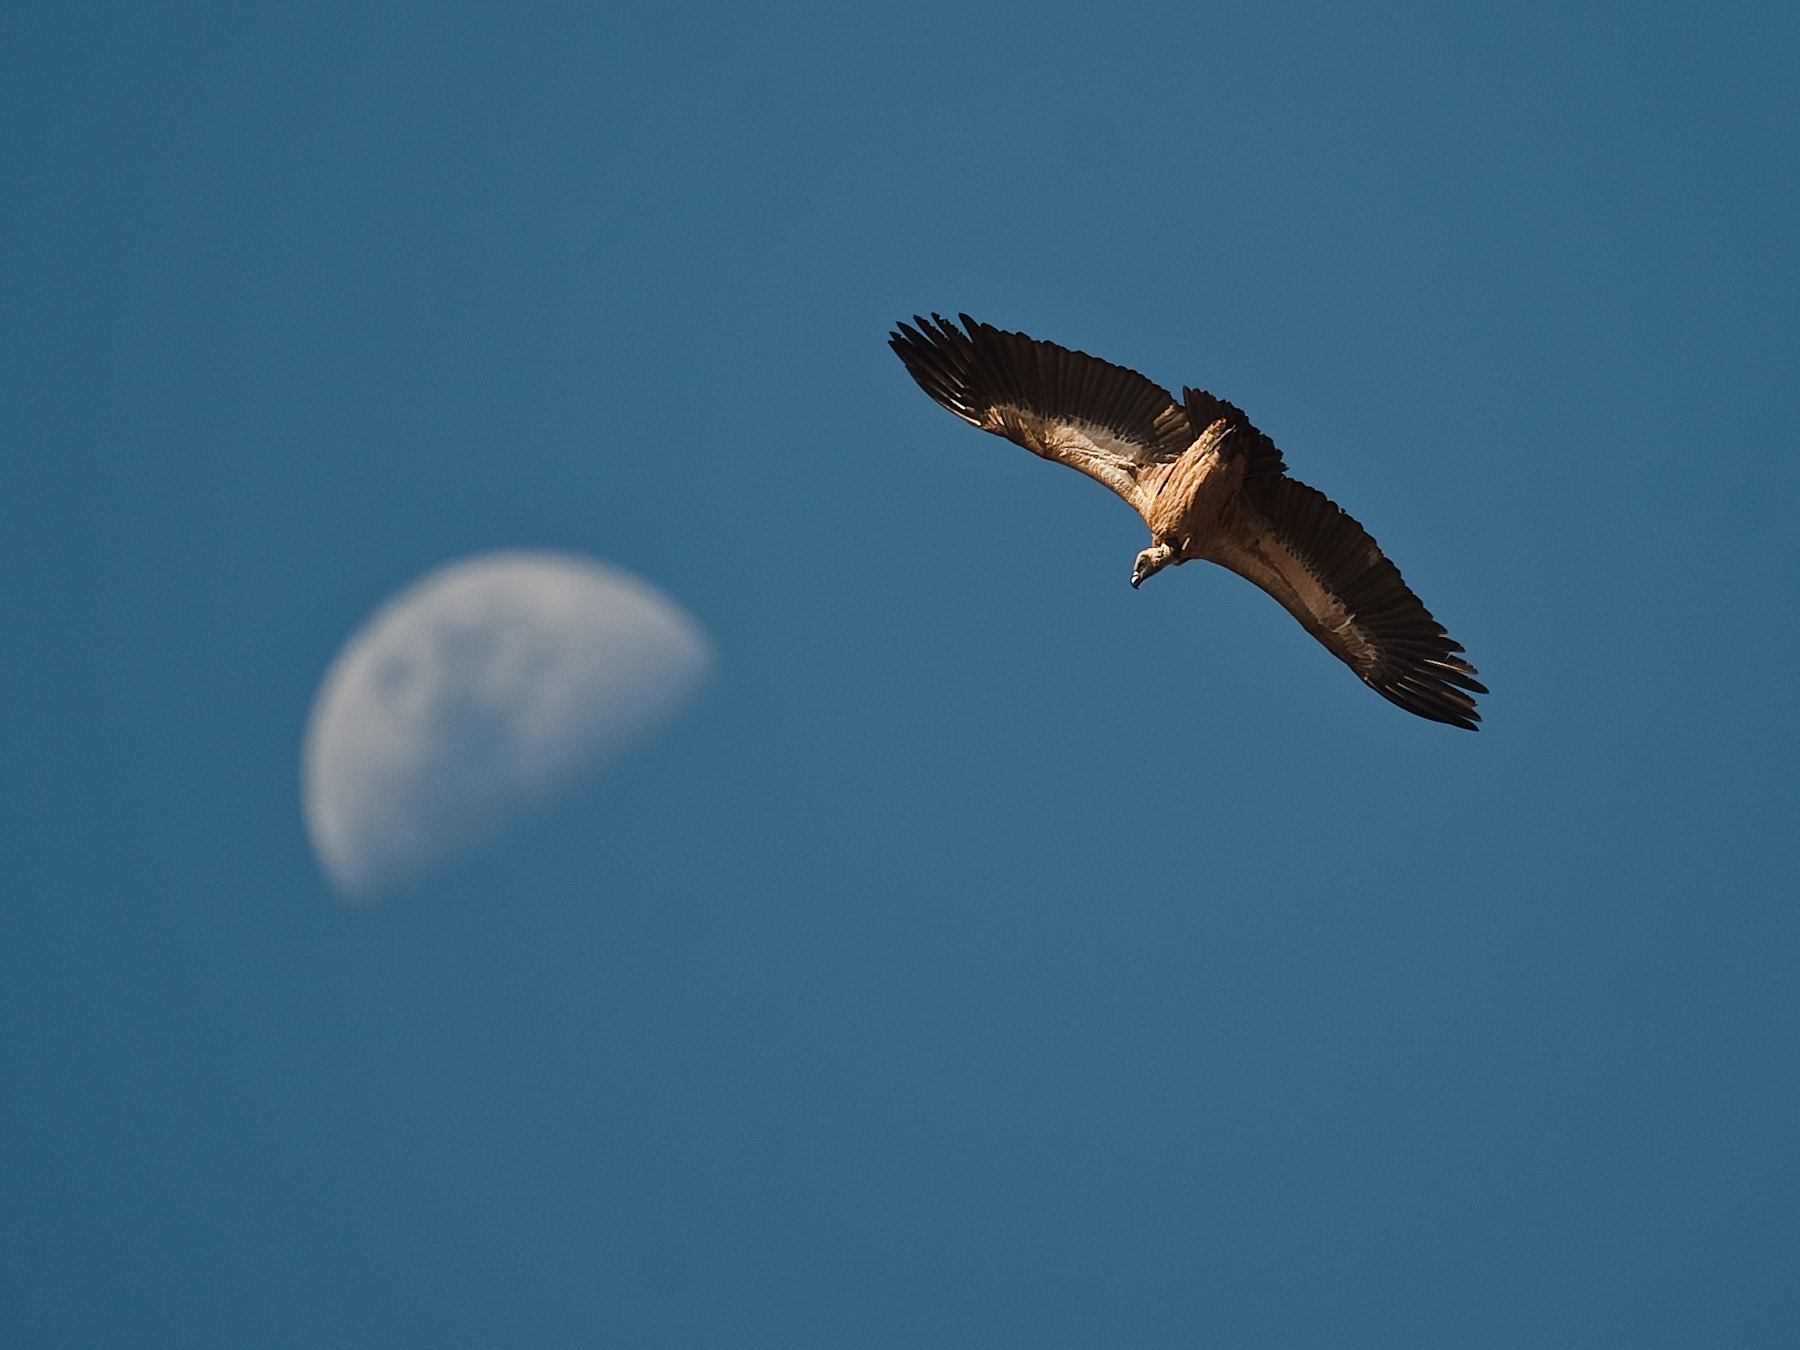 Photograph Fly me to the moon by Gorazd Golob on 500px